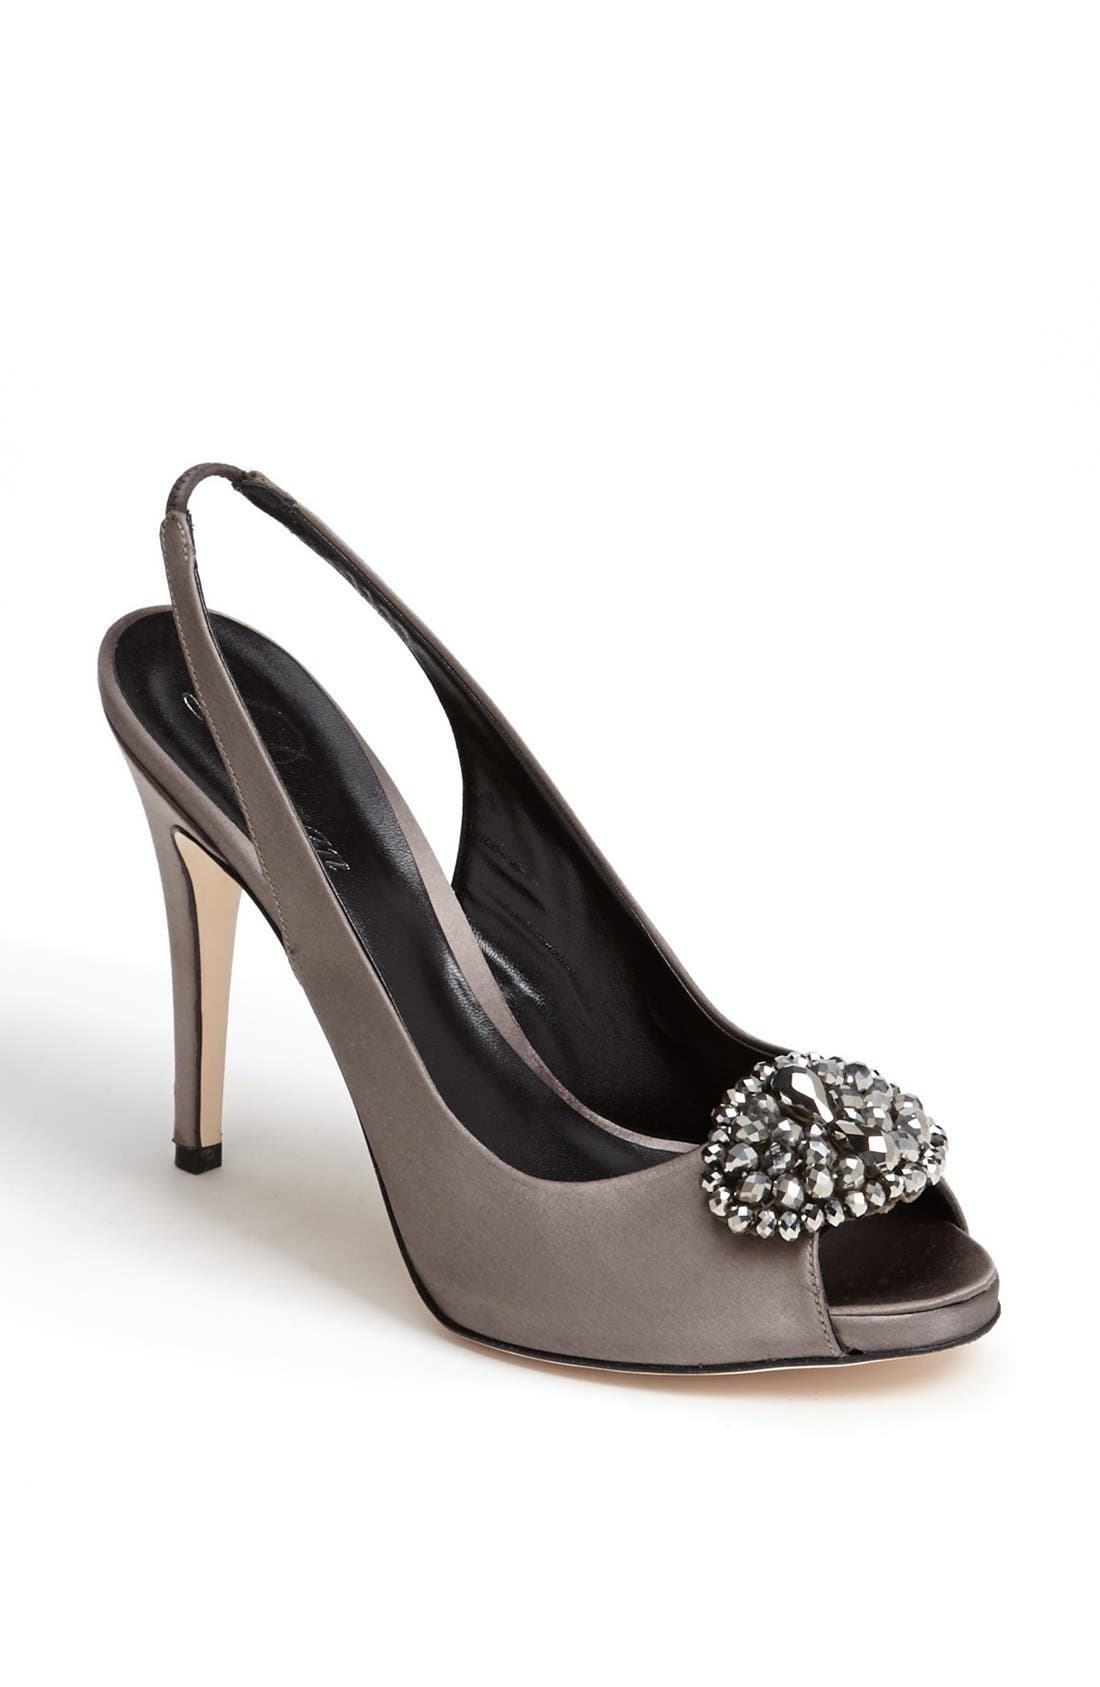 Alternate Image 1 Selected - Delman 'Aura' Slingback Pump (Online Only)